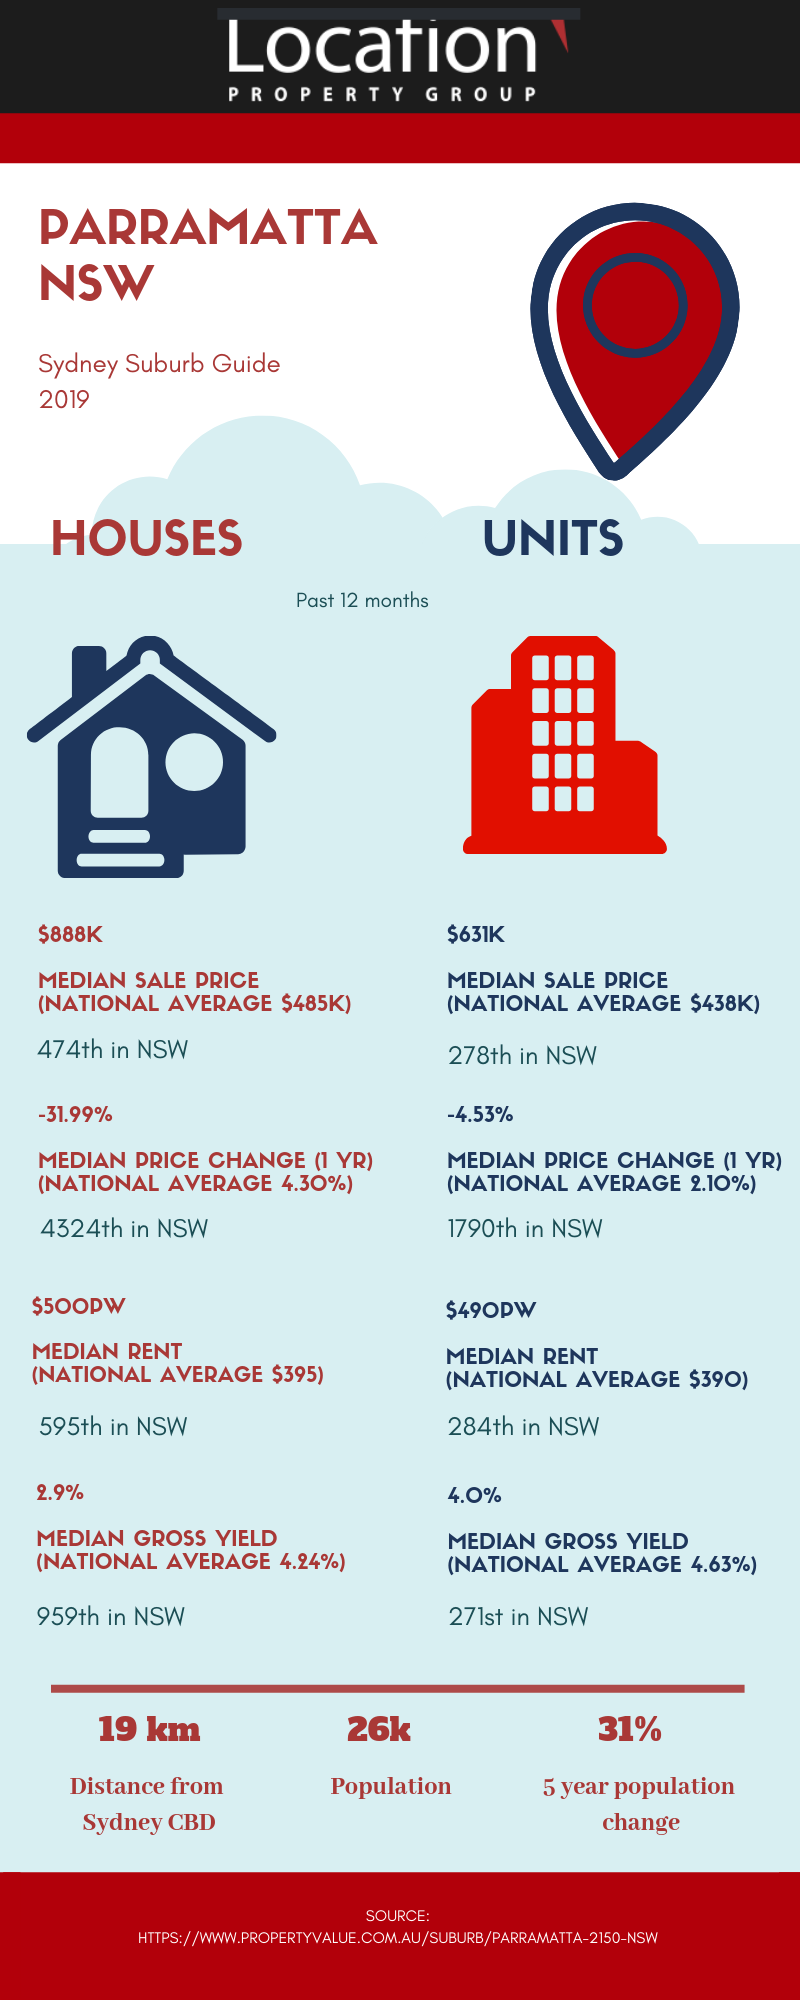 Parramatta Suburb Guide - Stats From Property Value URL below